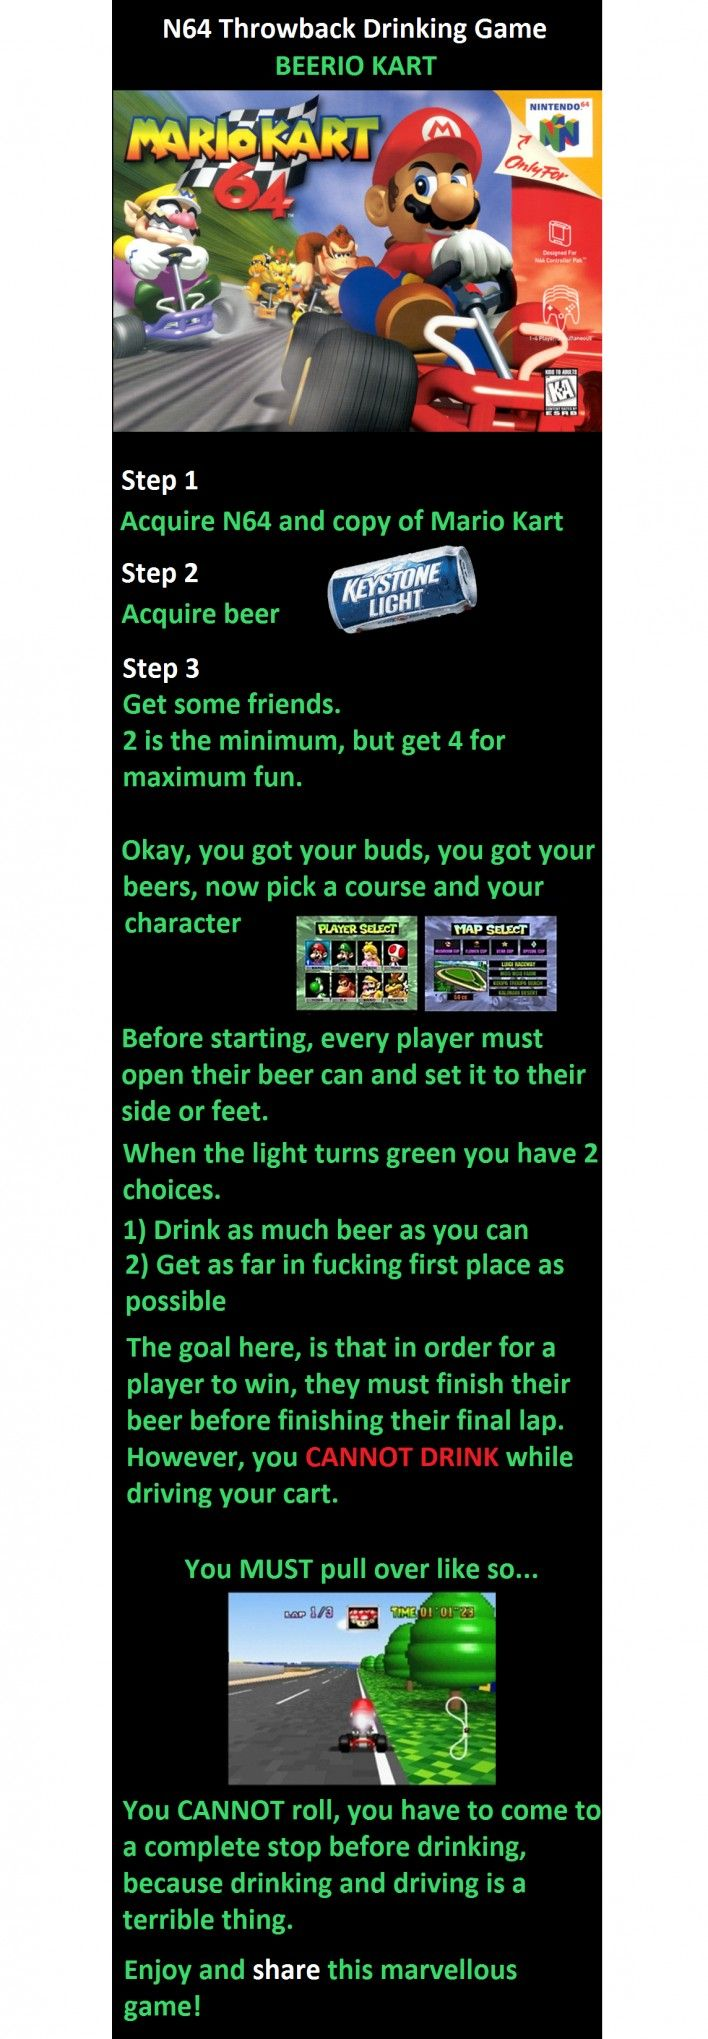 Pin By Claire Schellekens On Funny Shit Drinking Games Beerio Kart Mario Kart